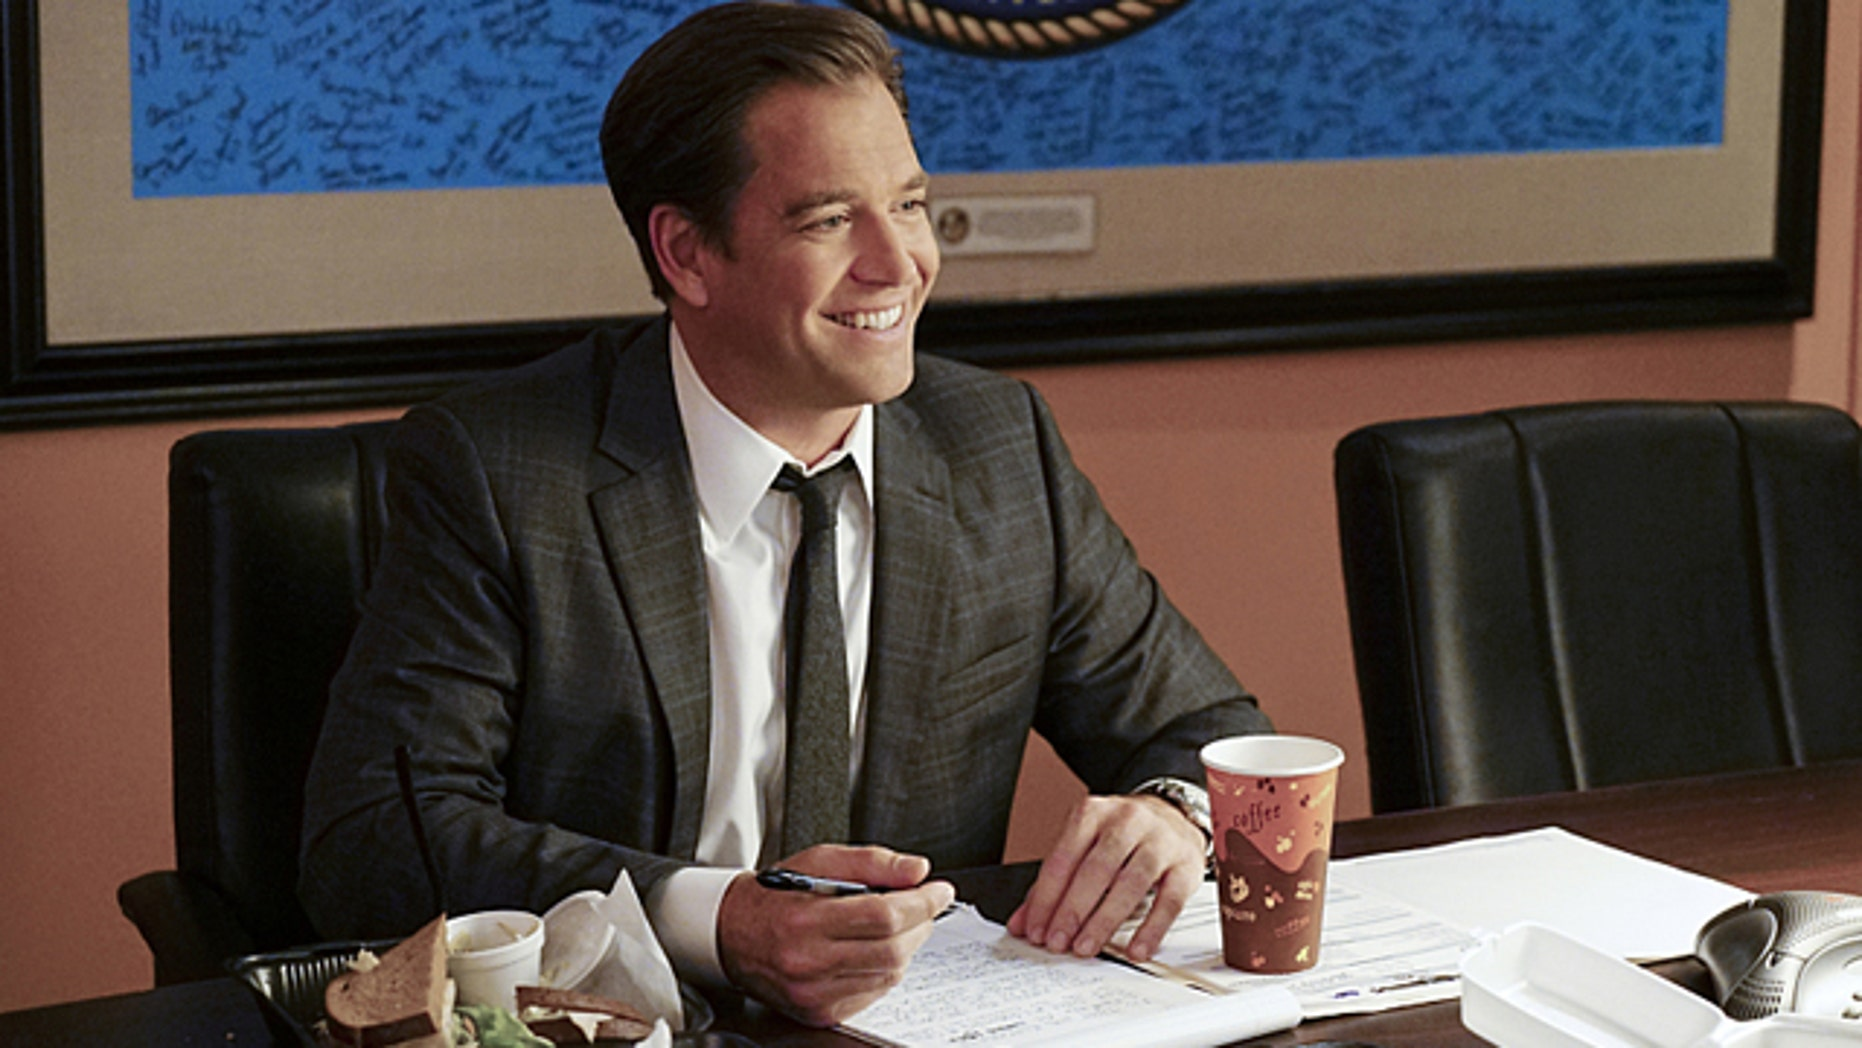 Michael Weatherly as Special Agent Tony DiNozzo on NCIS Photo: Sonja Flemming/CBS ©2016 CBS Broadcasting, Inc. All Rights Reserved